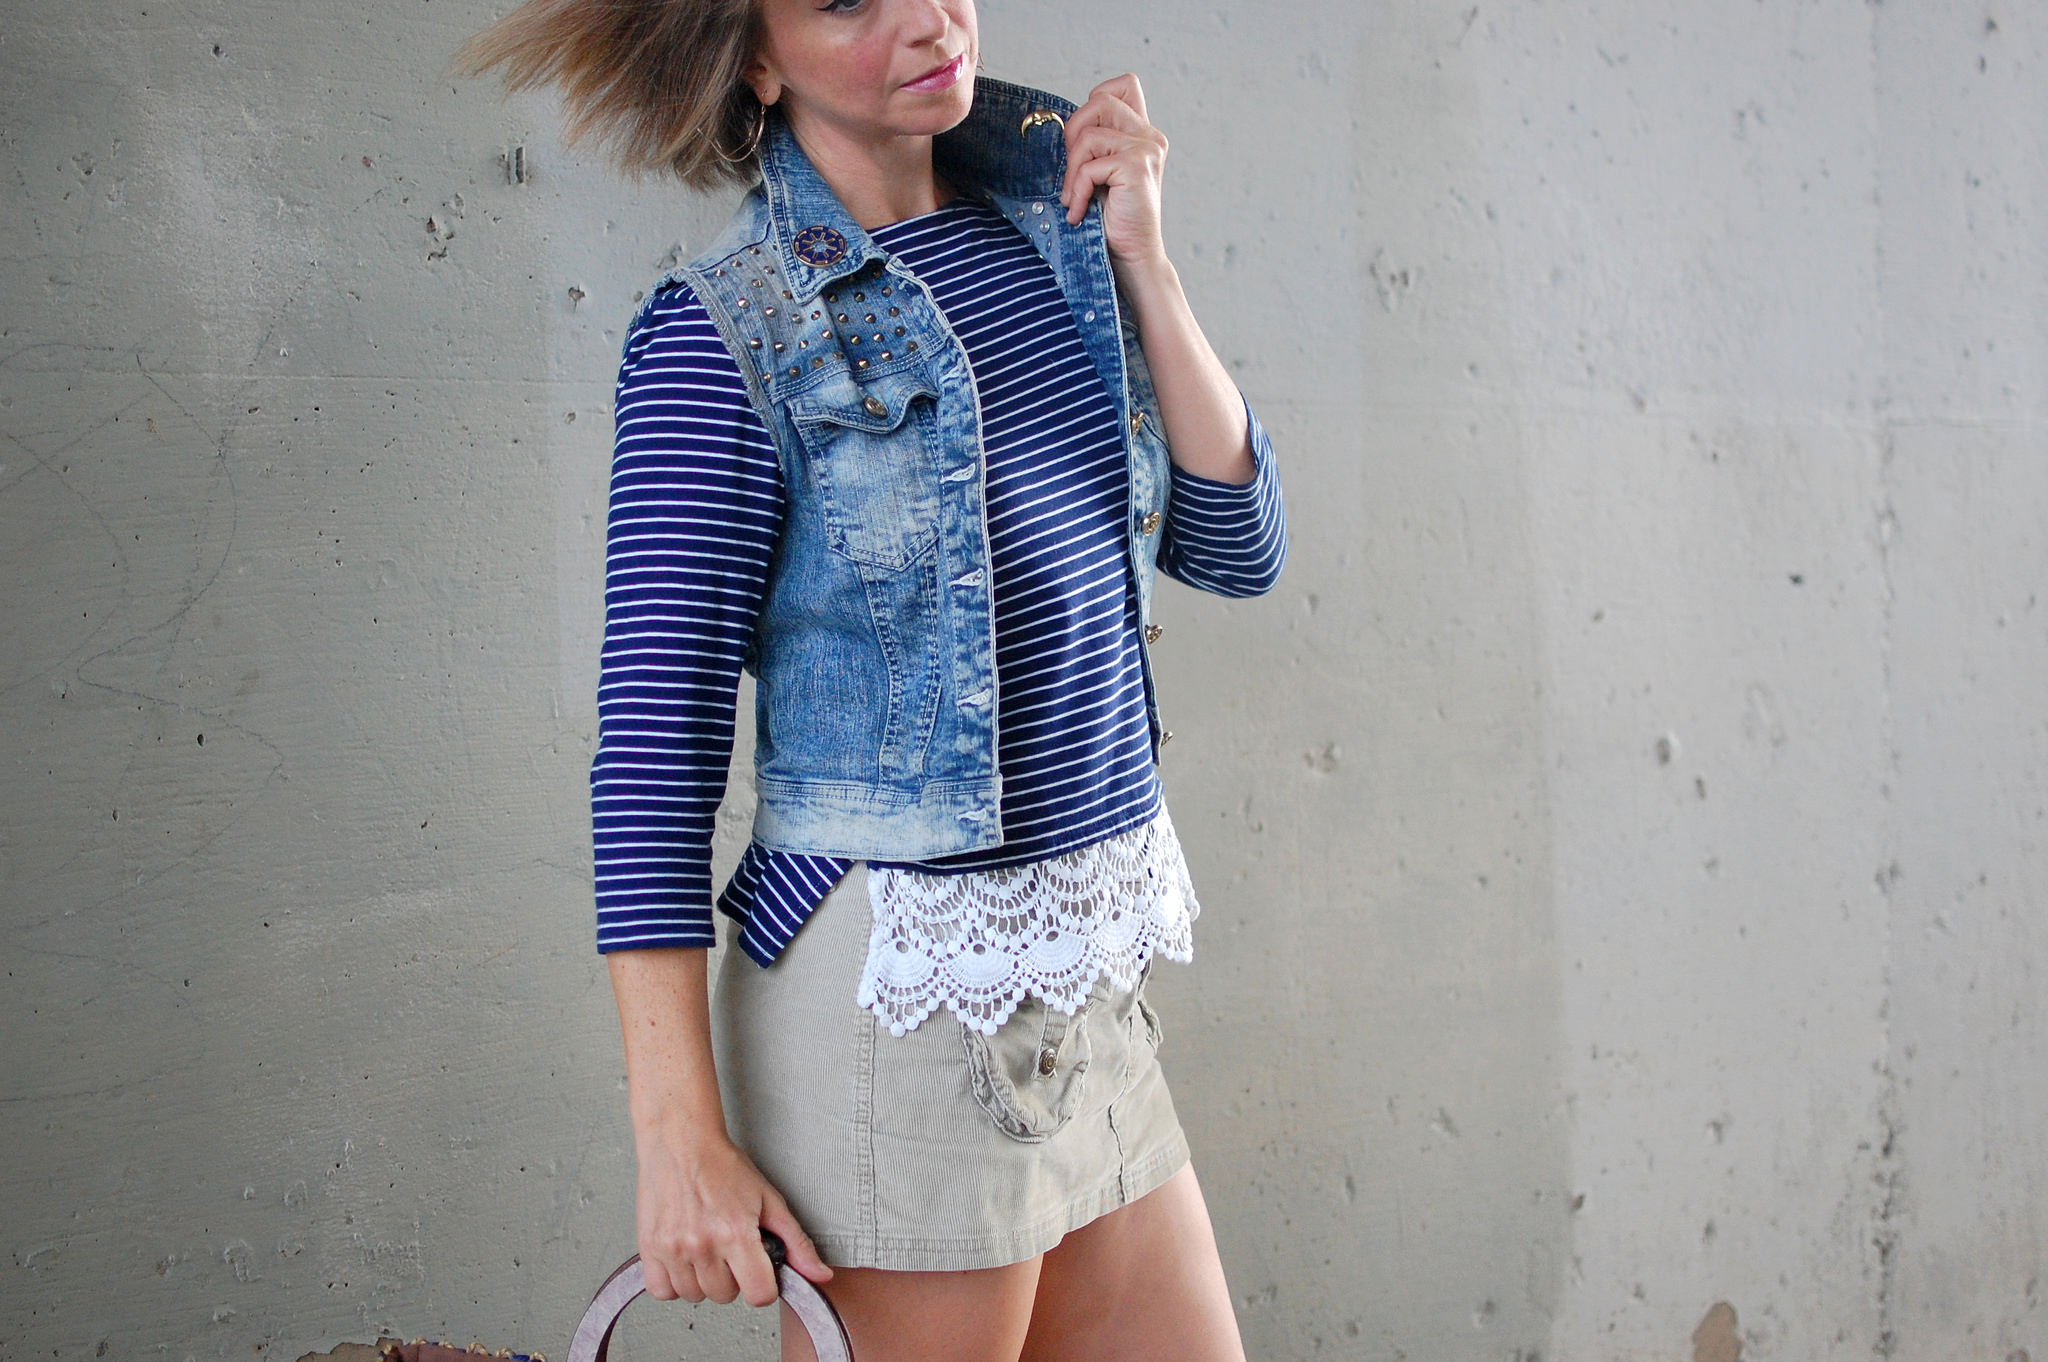 denim vest breton shirt crochet hem daily outfit blog ootd whatiwore2day corduroy mini